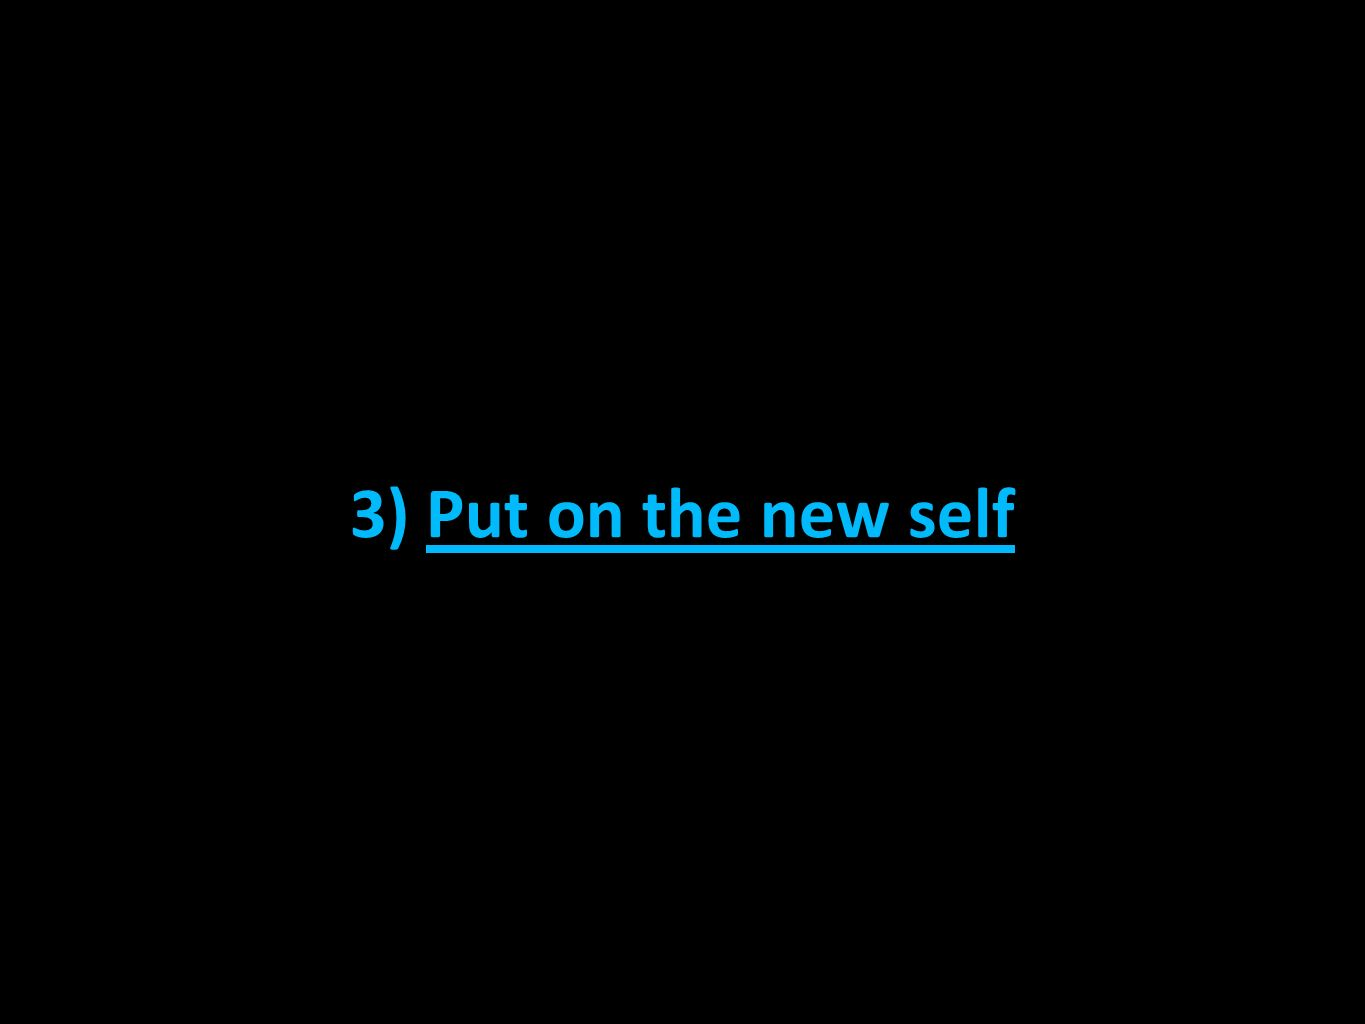 3) Put on the new self